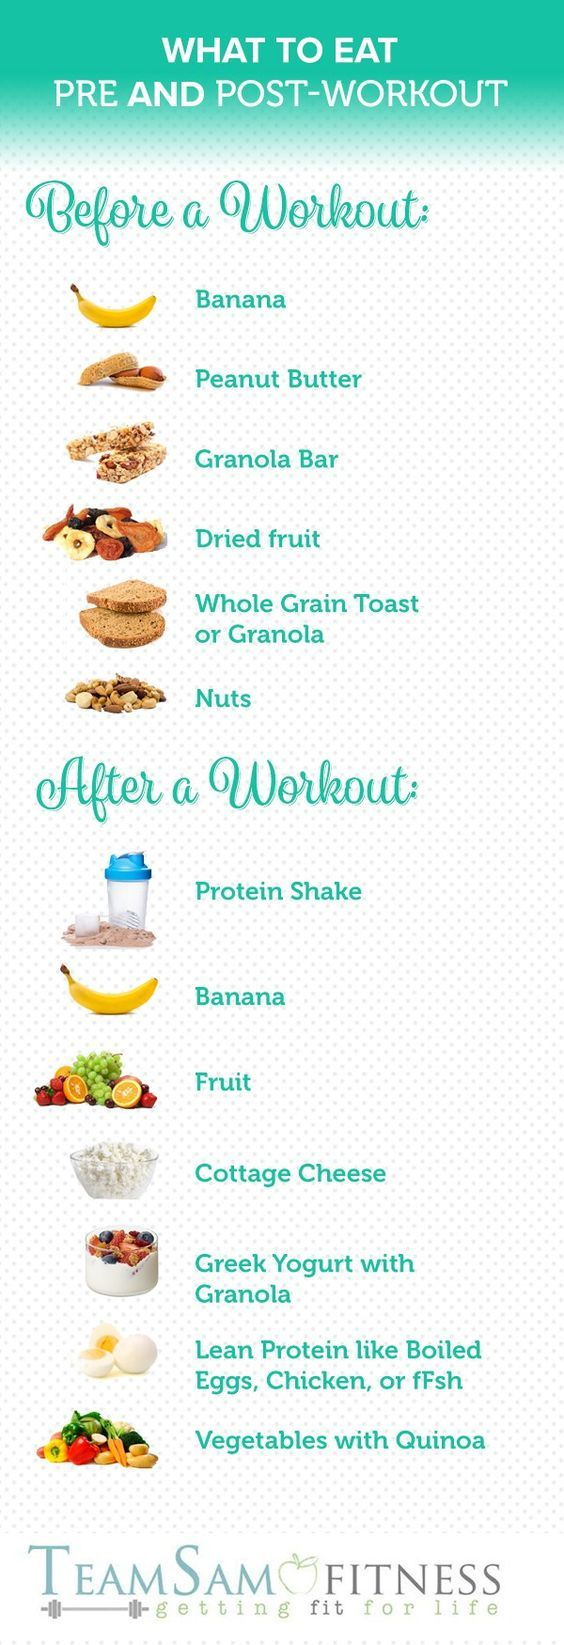 Beauty and Fitness with Marry: Workout Diet                                                                                                                                                                                 More